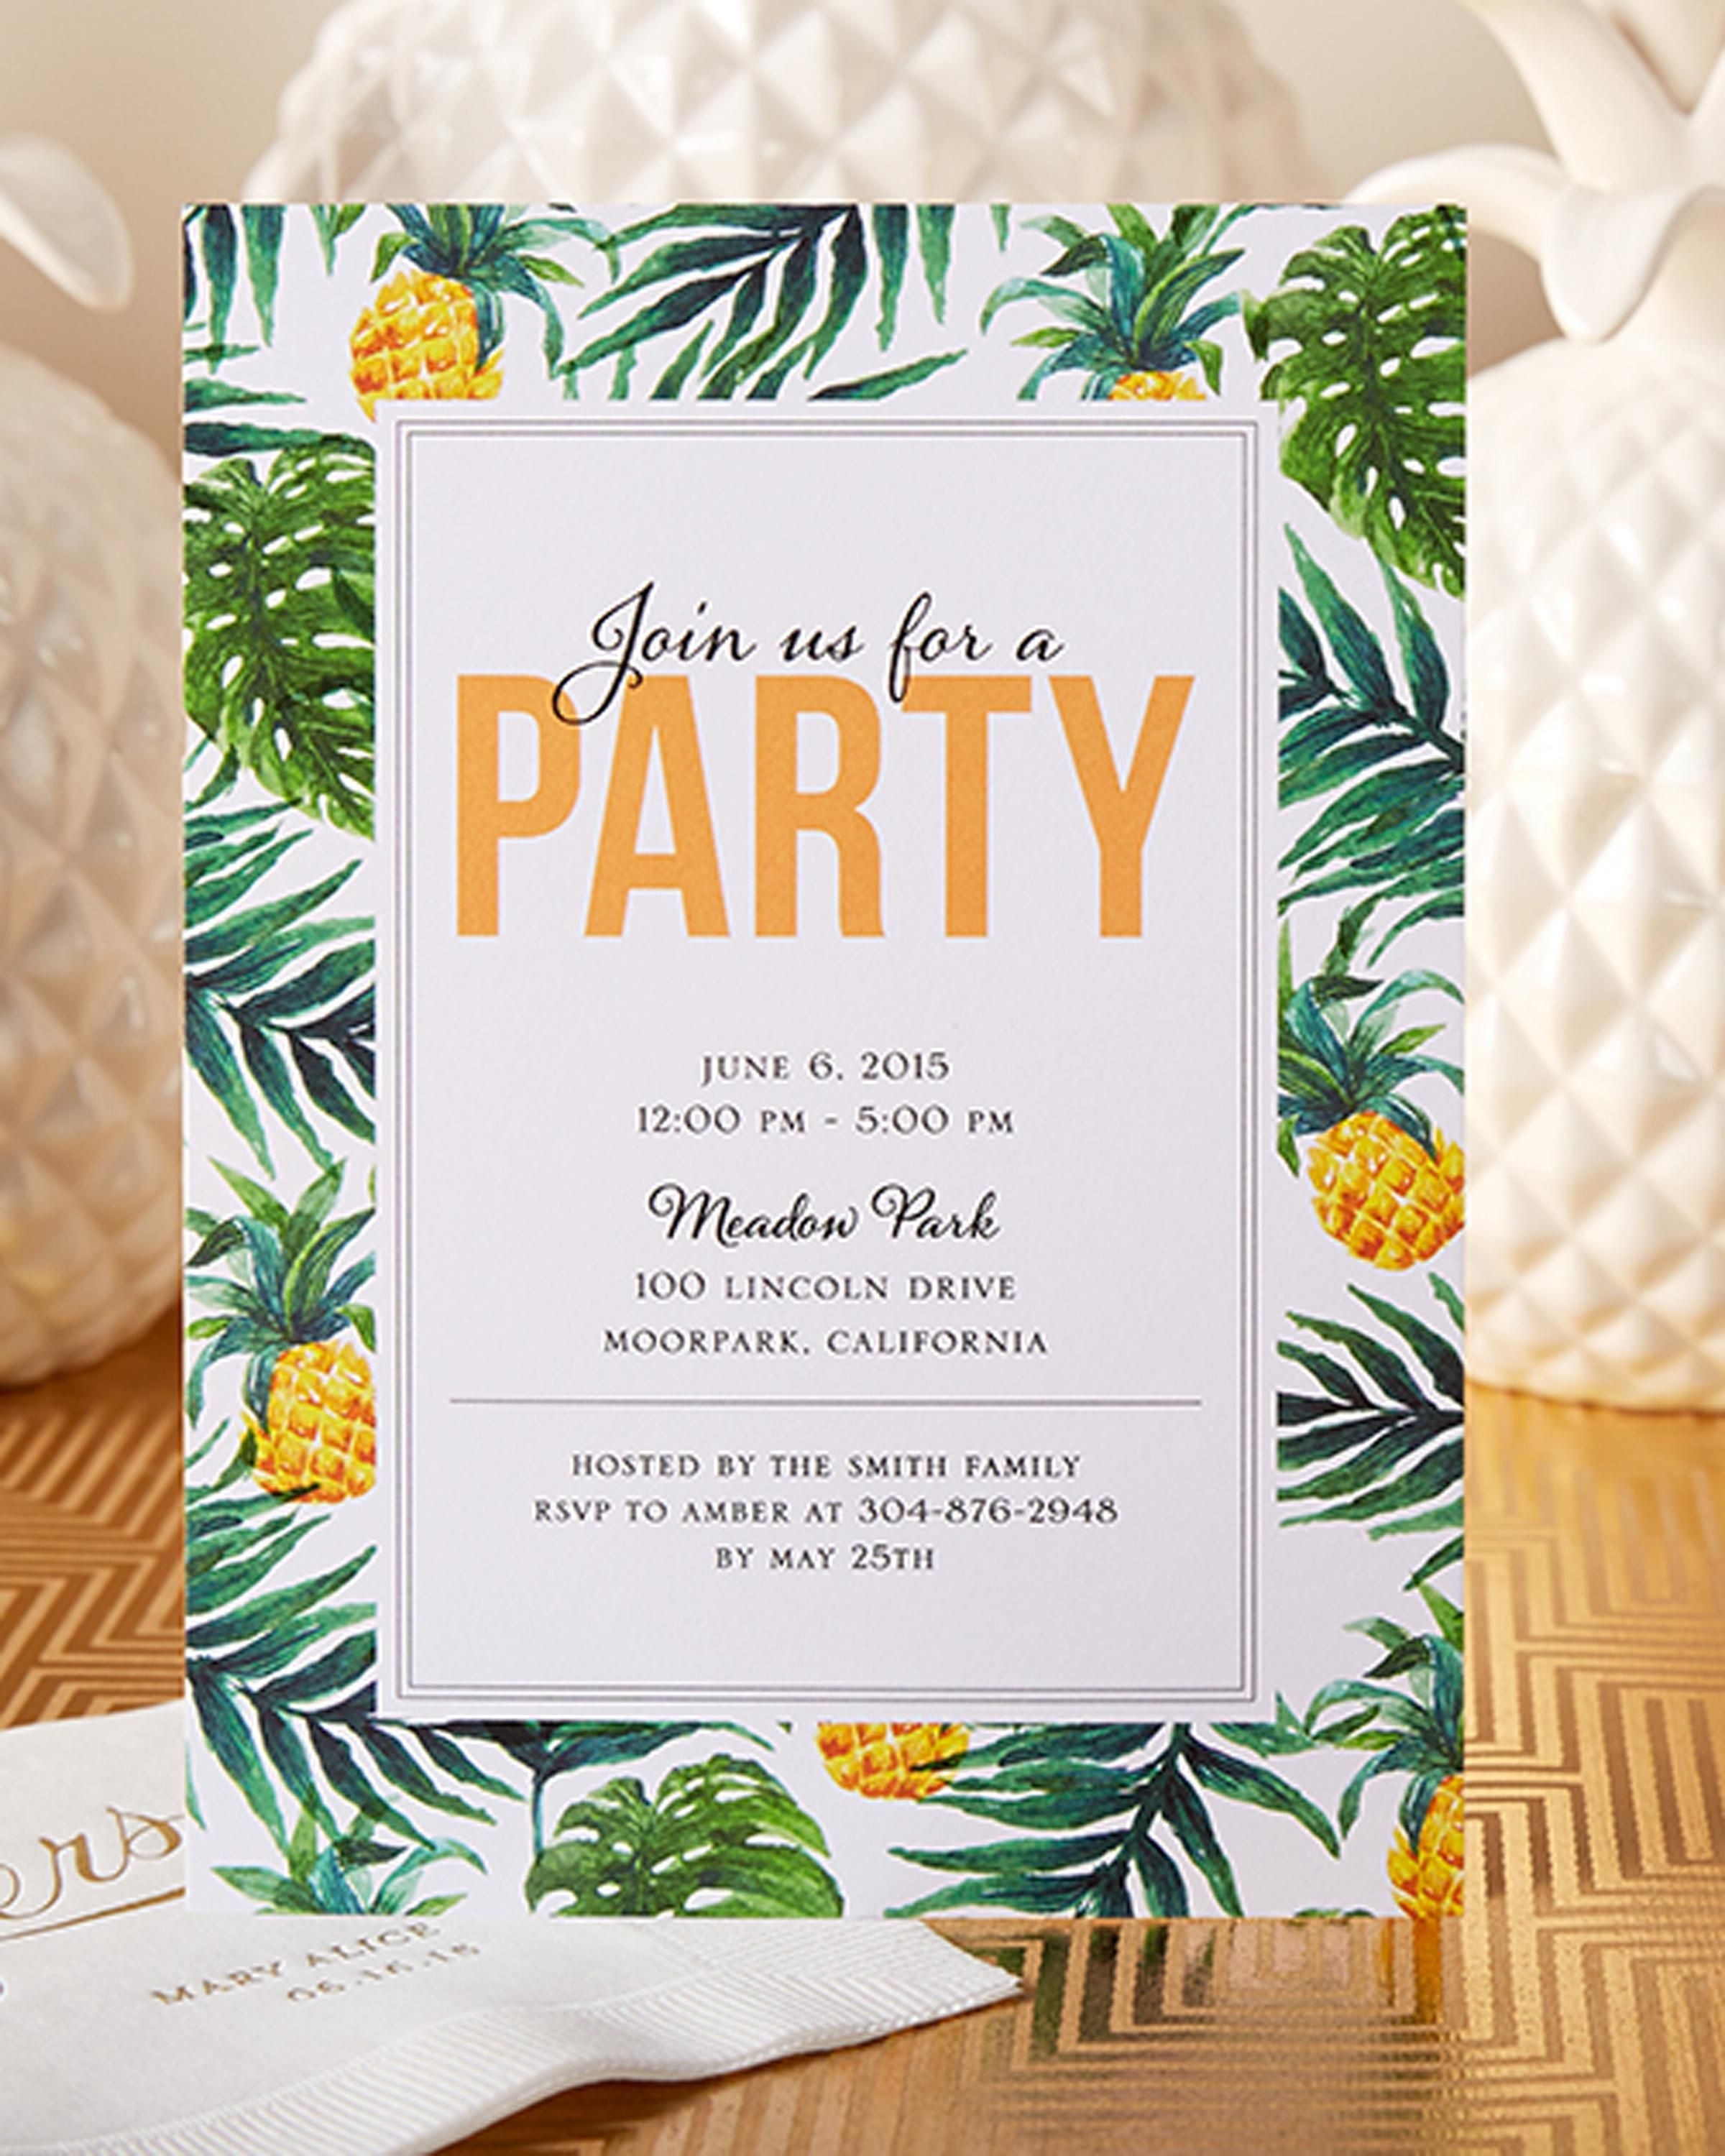 Have Your Friends Join You For A Tropical Party This Summer With Unique Personalized Invitation From Tiny Prints